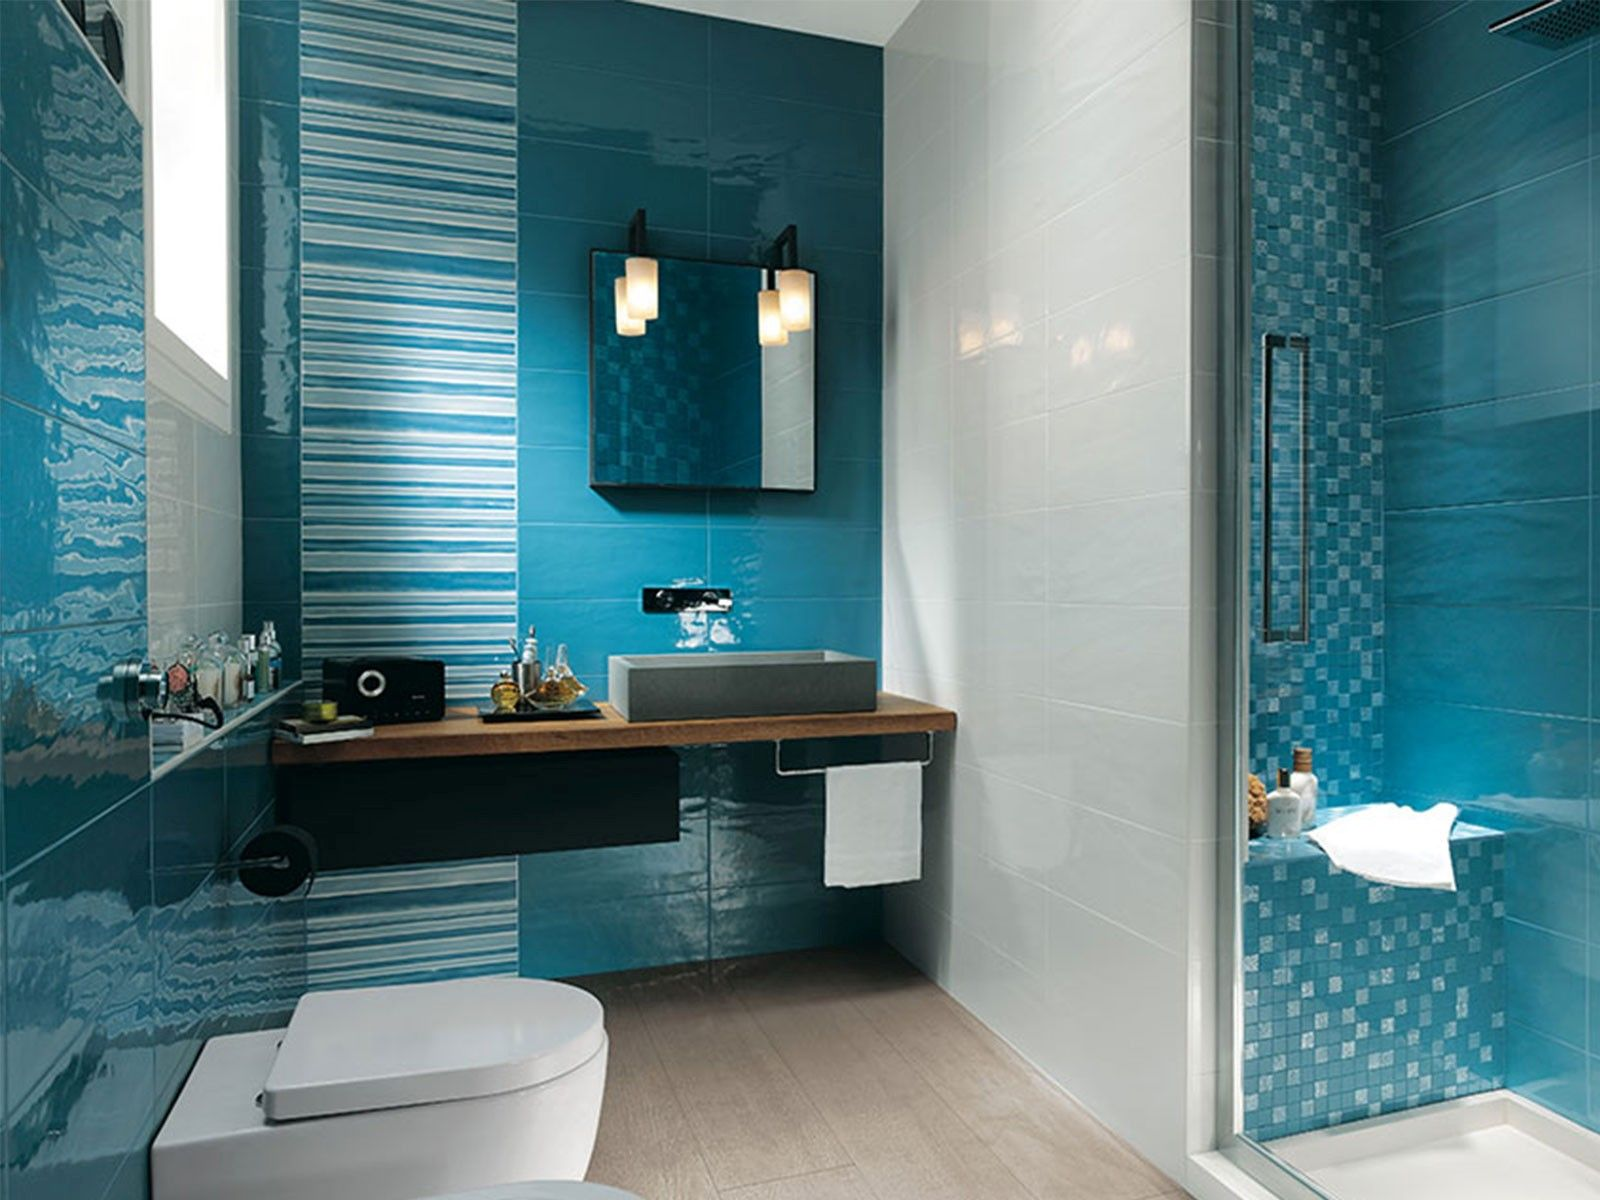 Awesome Blue Bathroom Ideas Design Ideas The Bathroom Is Just One Of The Main Rooms In The Home After Bagno Turchese Arredo Bagno Moderno Arredamento Bagno